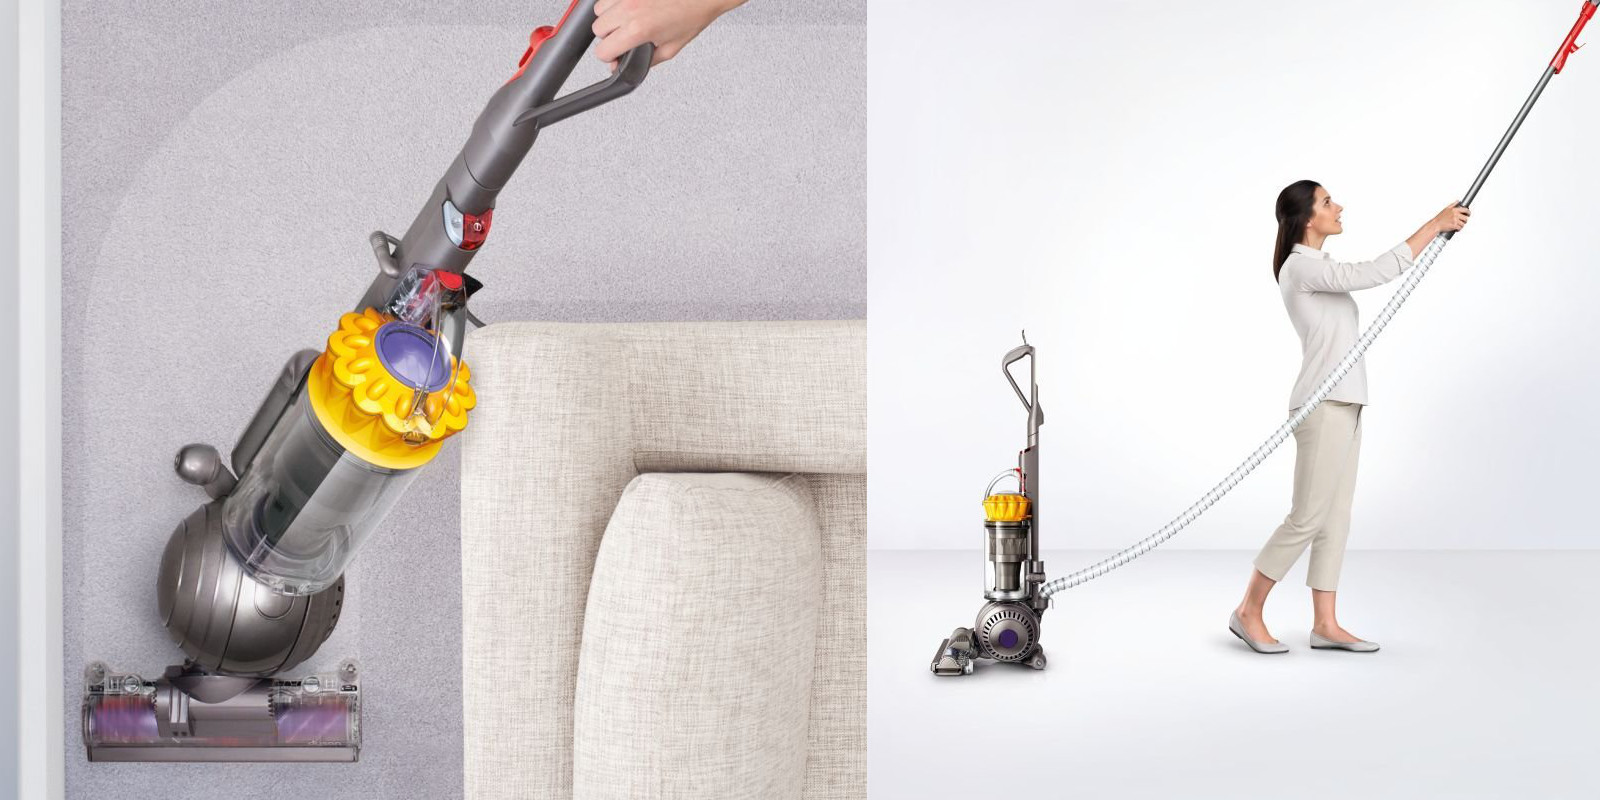 Dyson Multi Floor Bagless Upright Vac 200 Shipped For